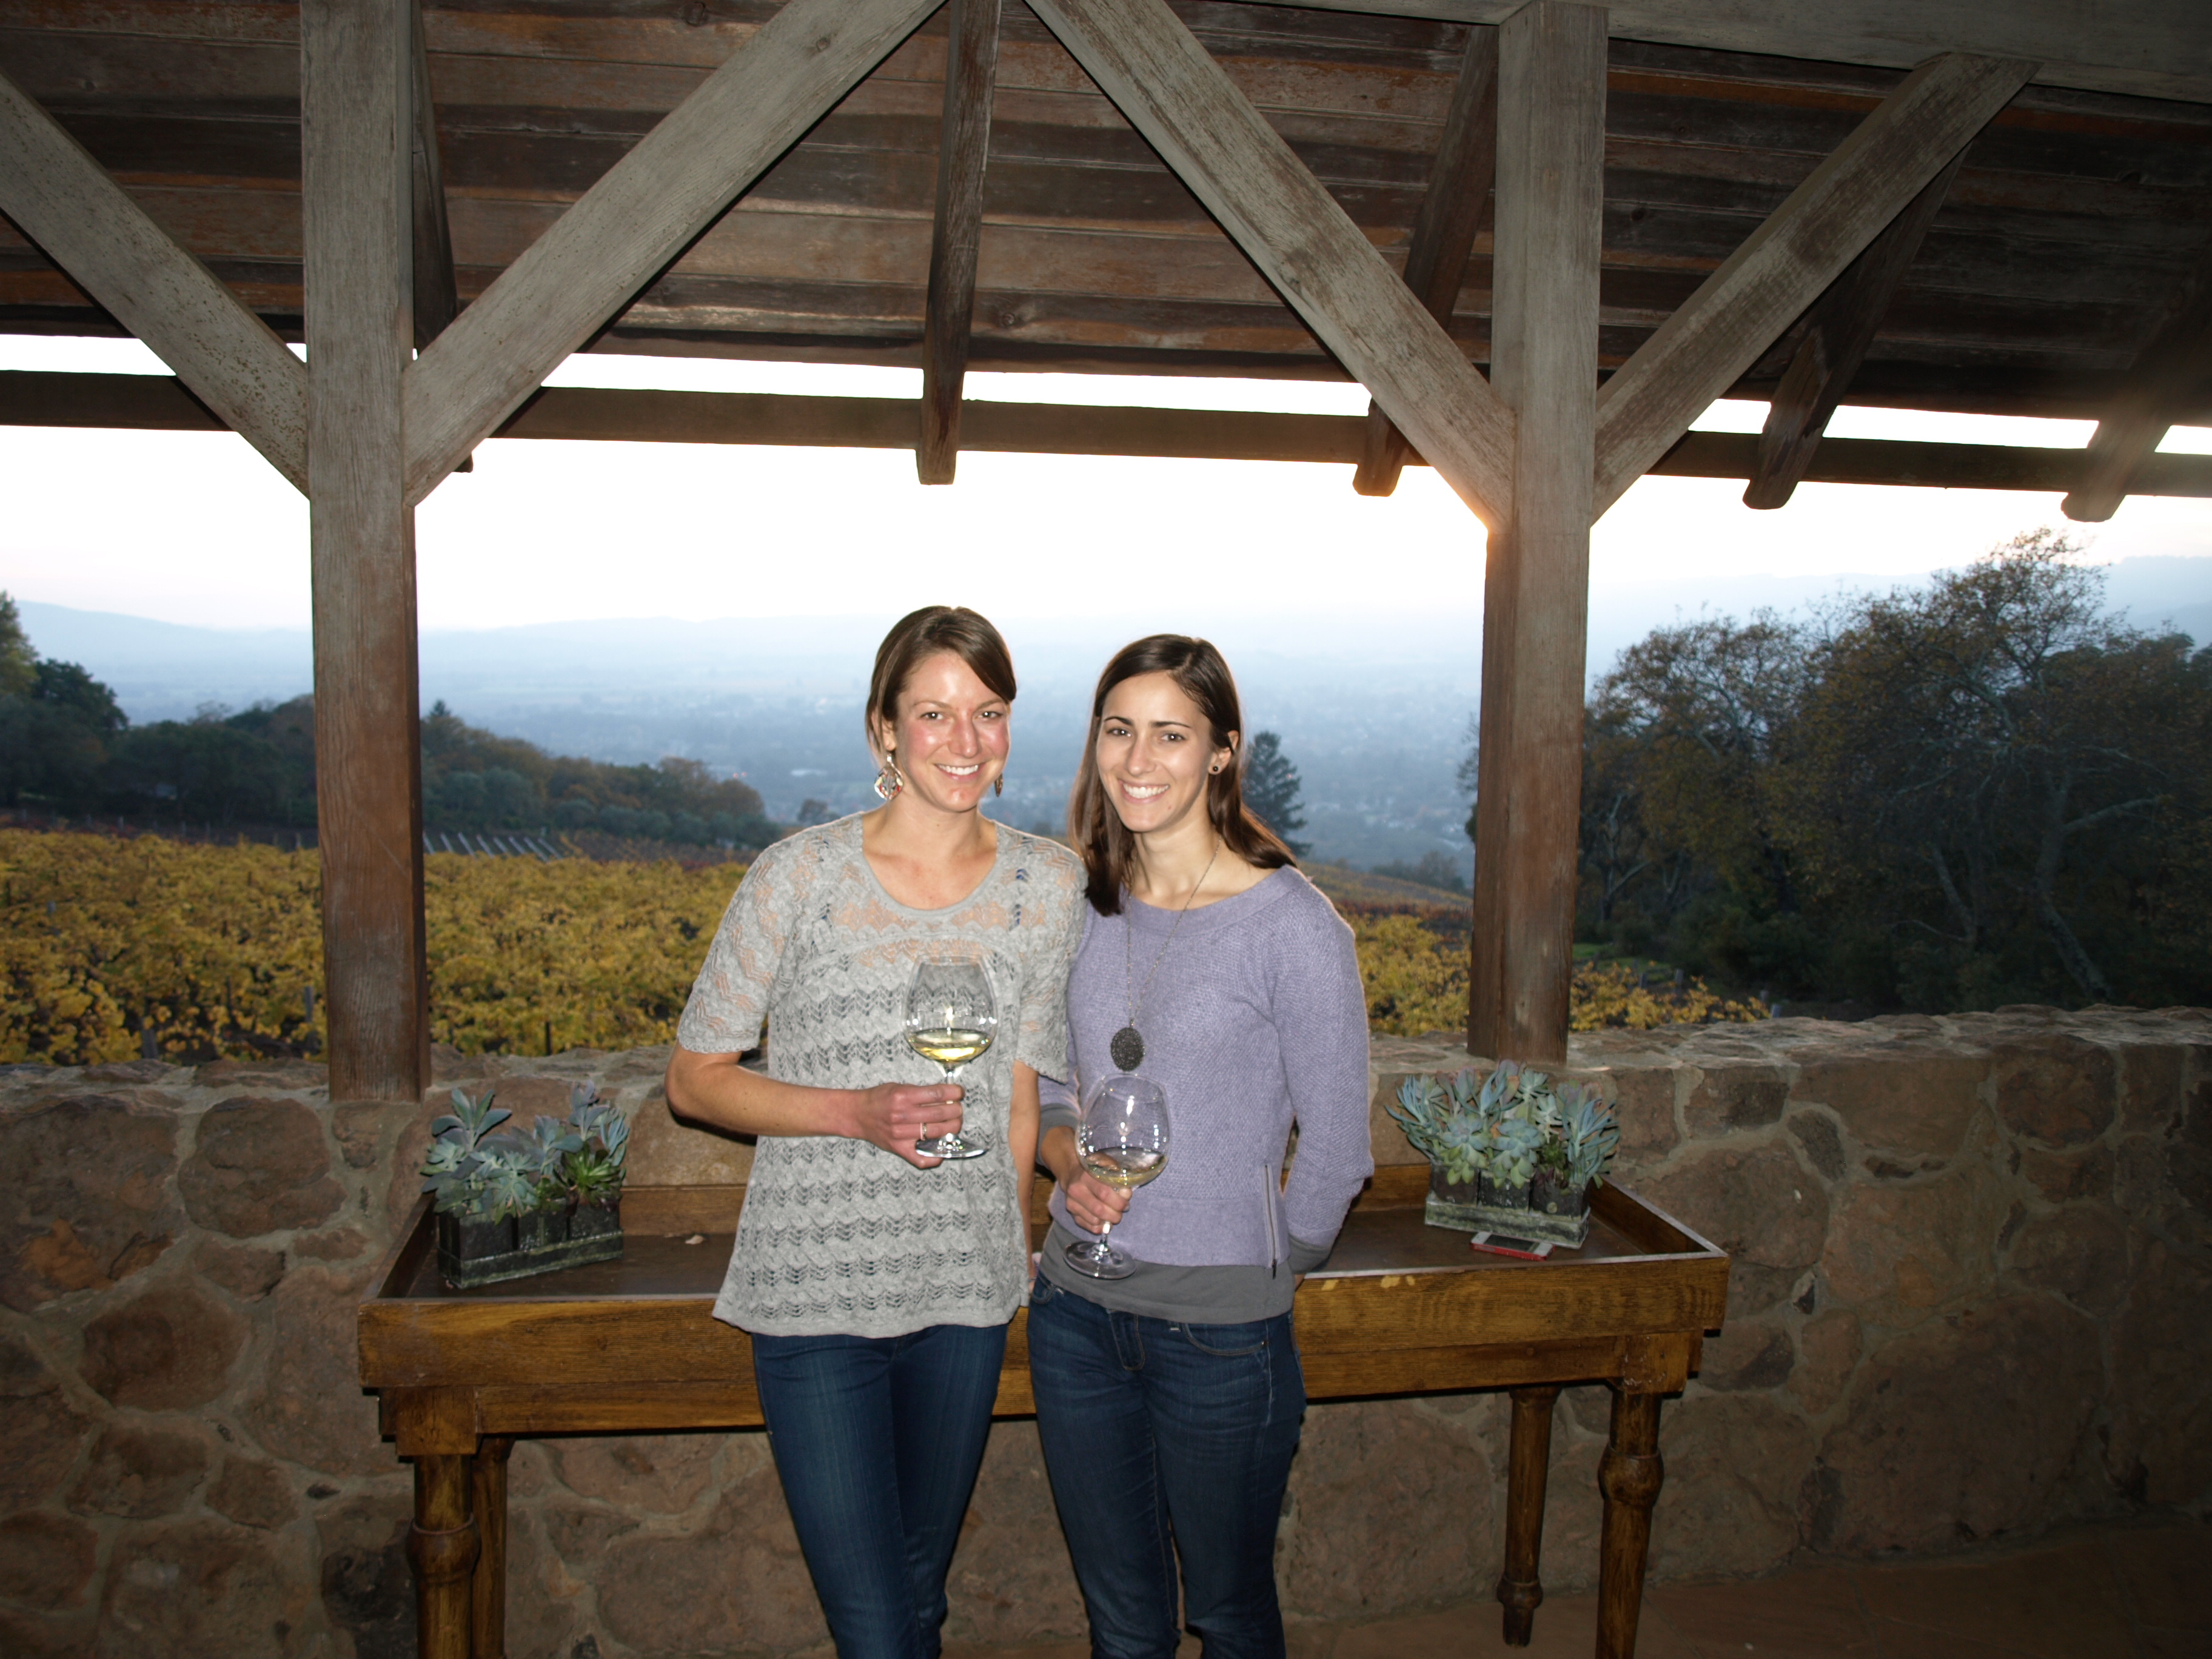 Bride-to-be Blogger Kristy: How My Sister Is Making Our Wedding-Day Wine